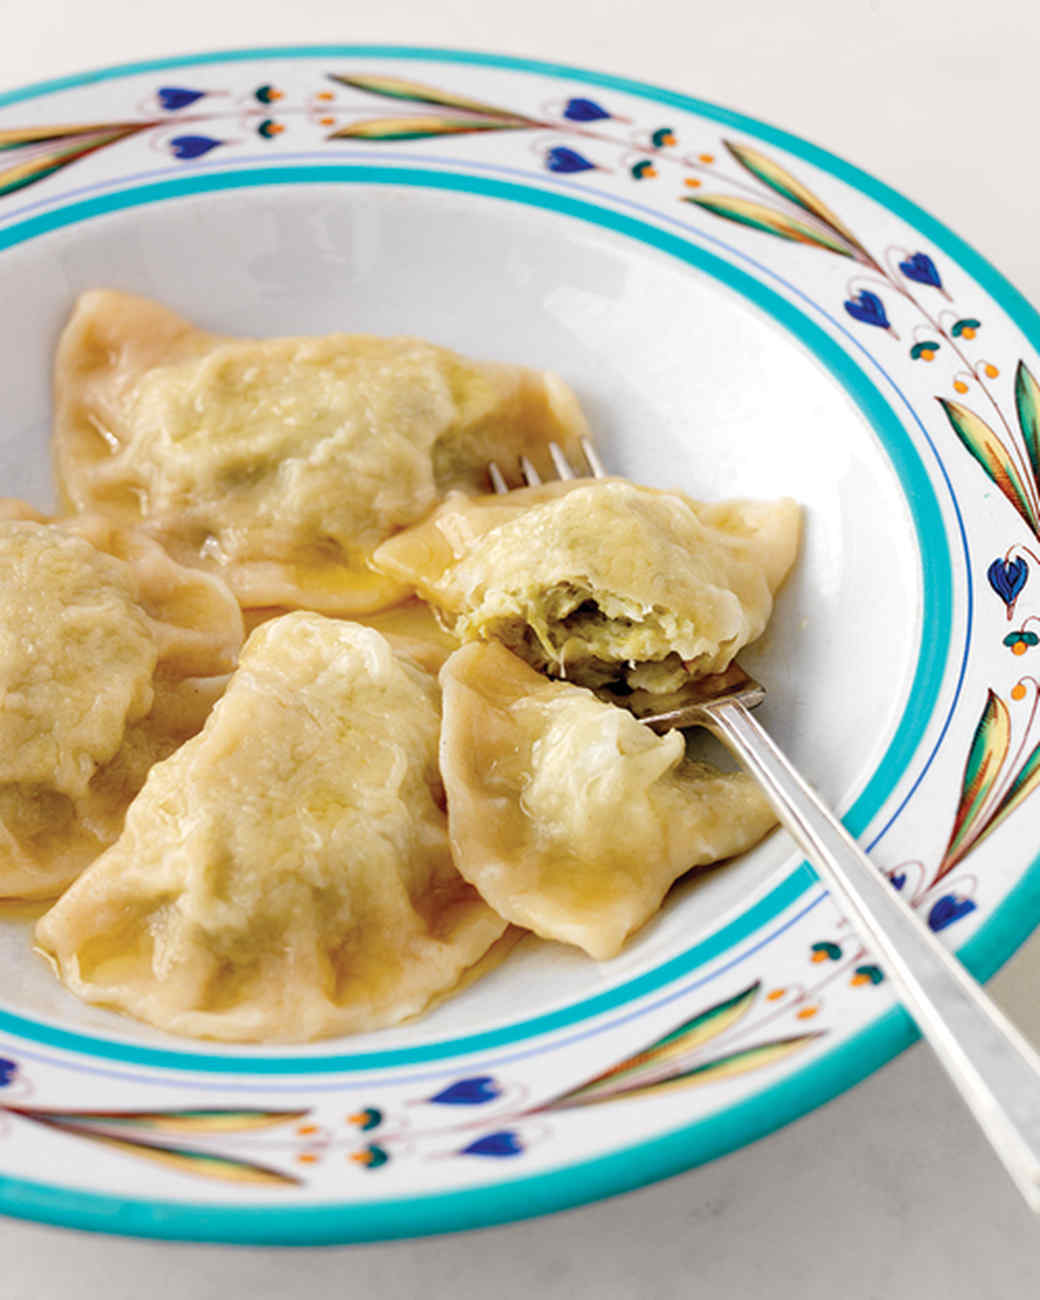 Pierogi with Cabbage Filling and Clarified Butter